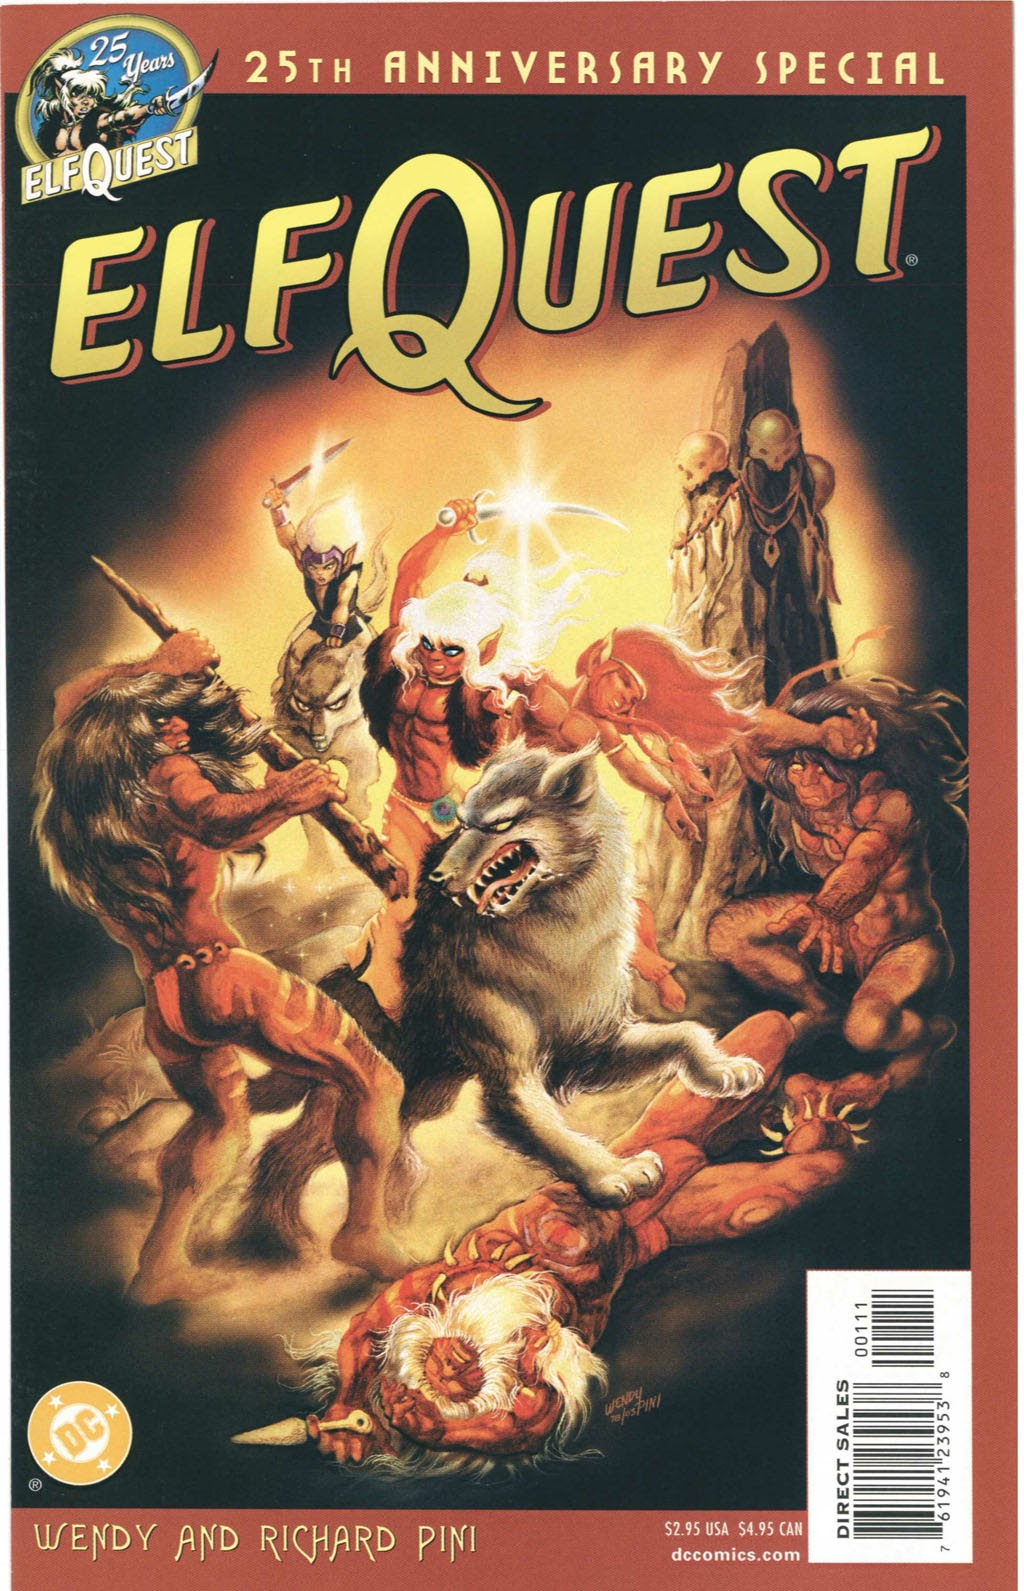 Elfquest 25th Anniversary Special Full Page 1